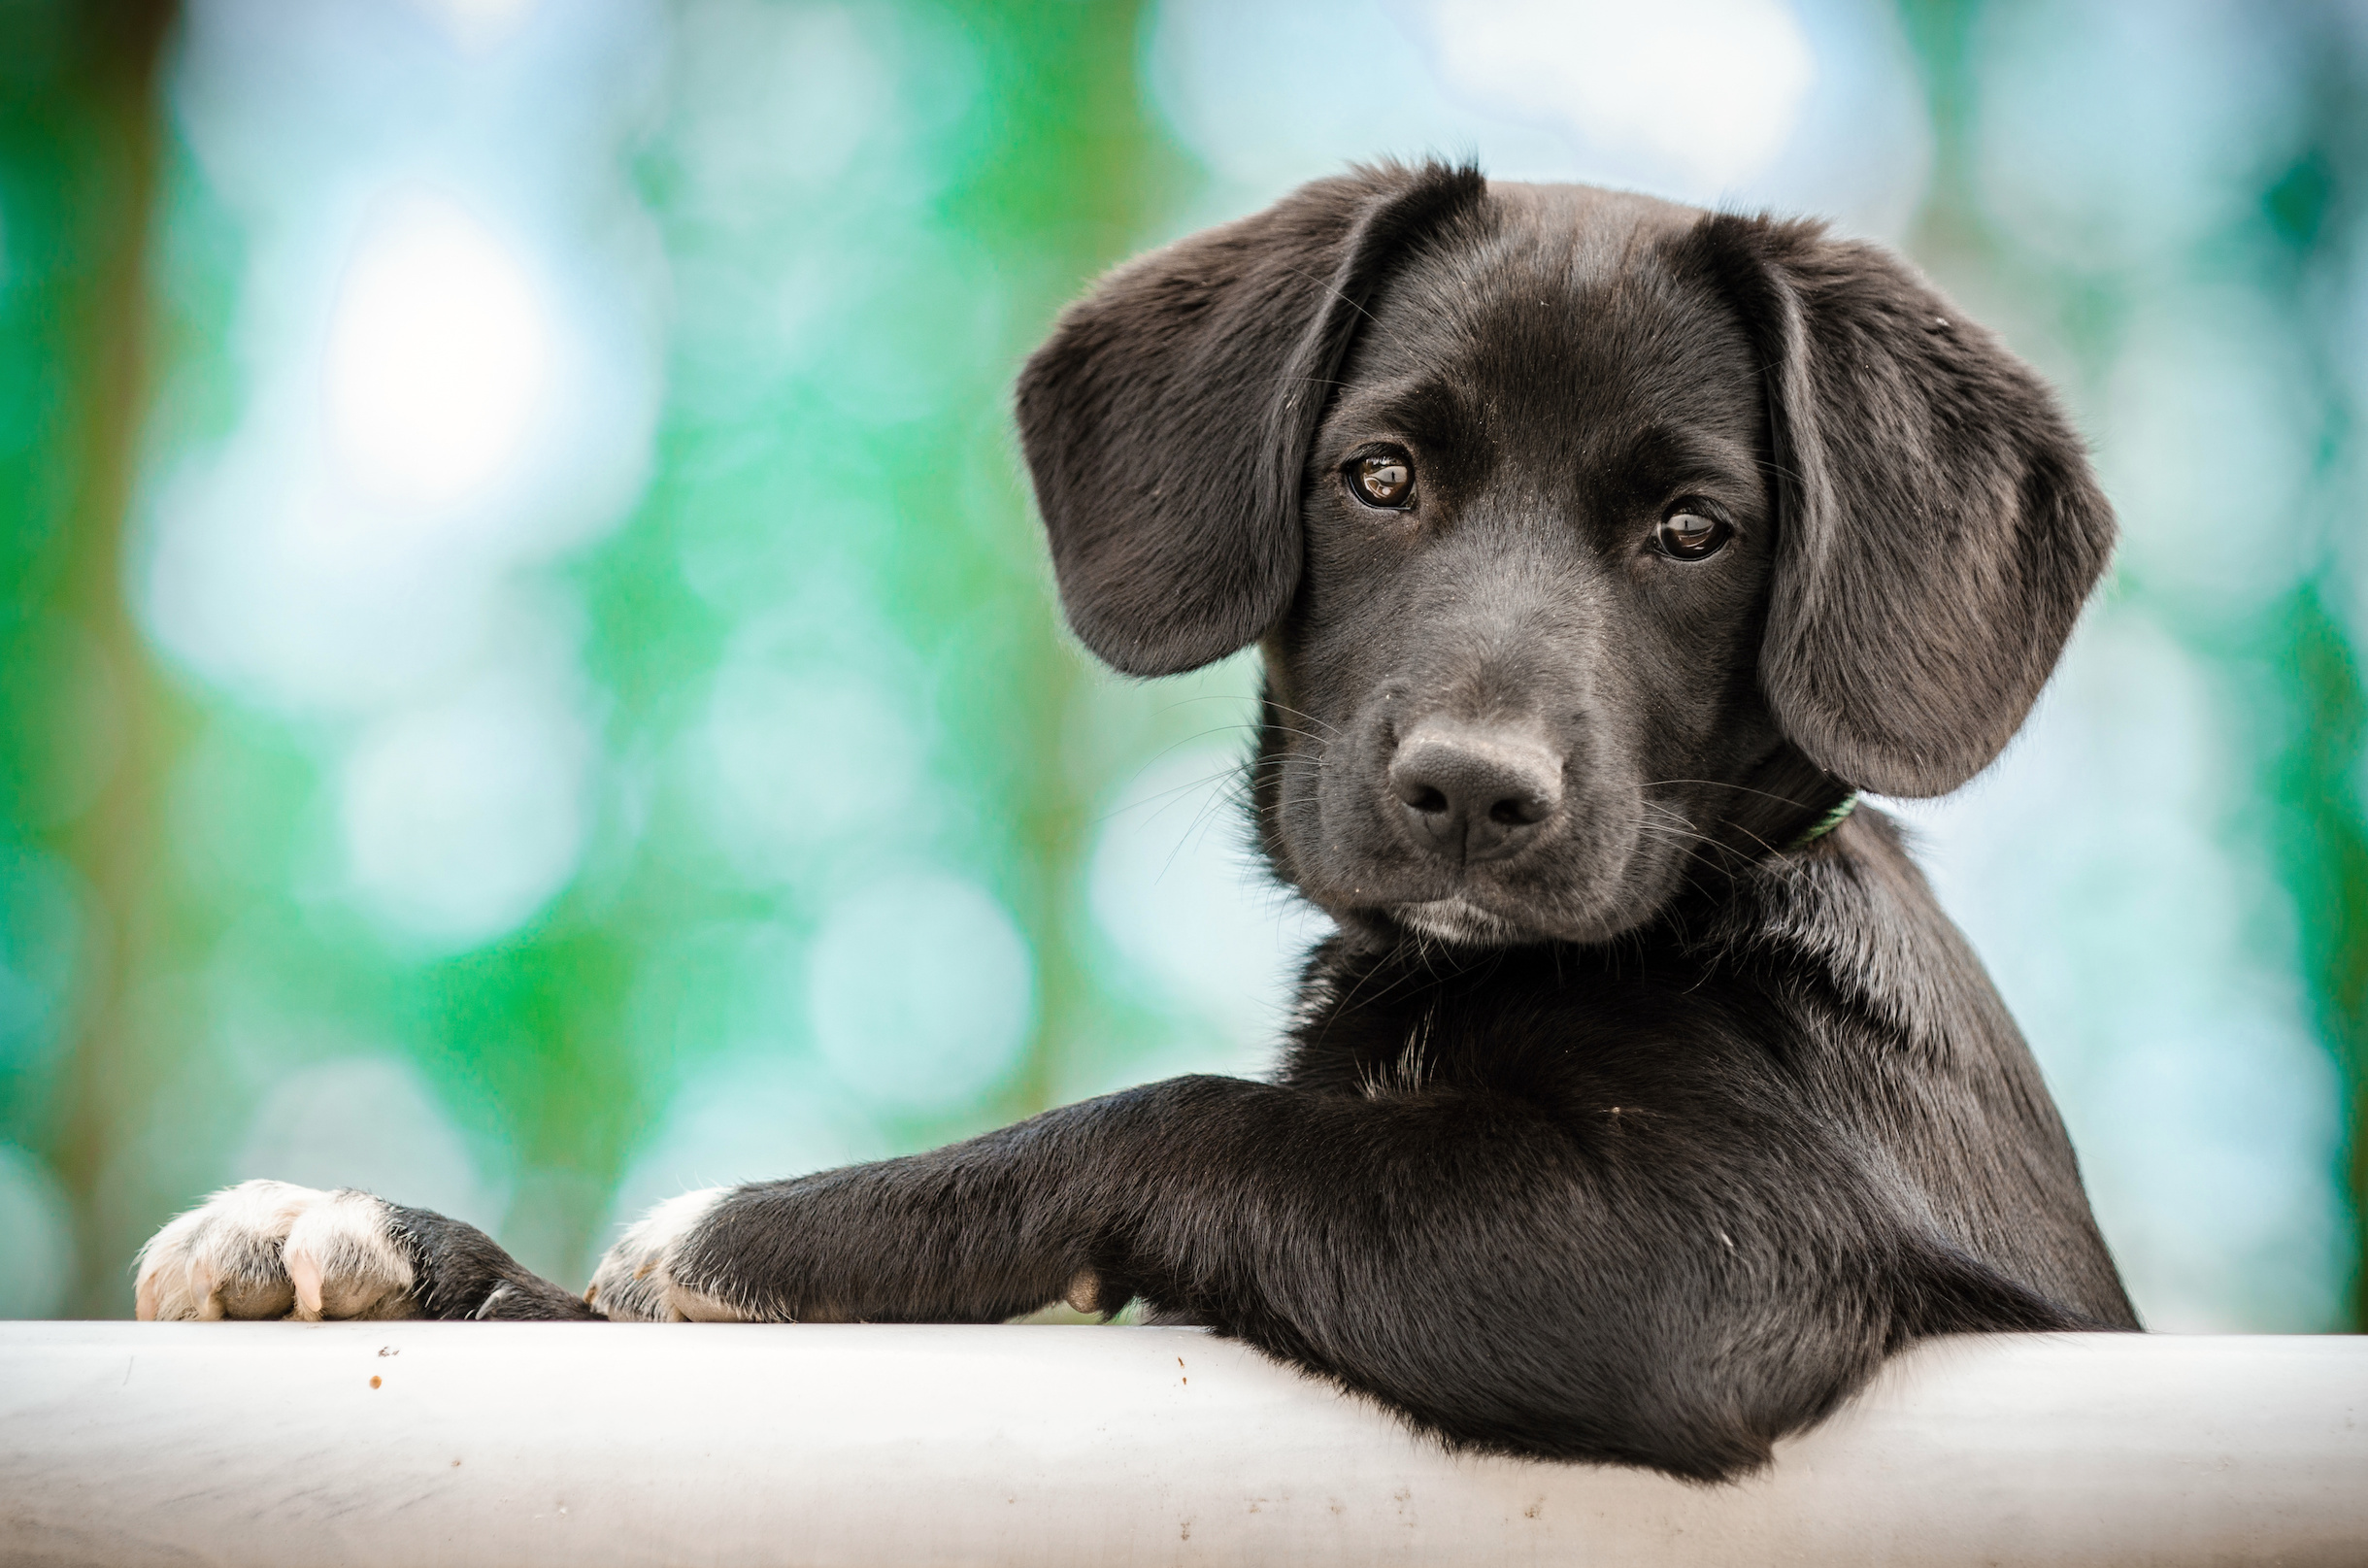 Researchers have found that puppies begin to trust humans for guidance when they are as young as two months old.